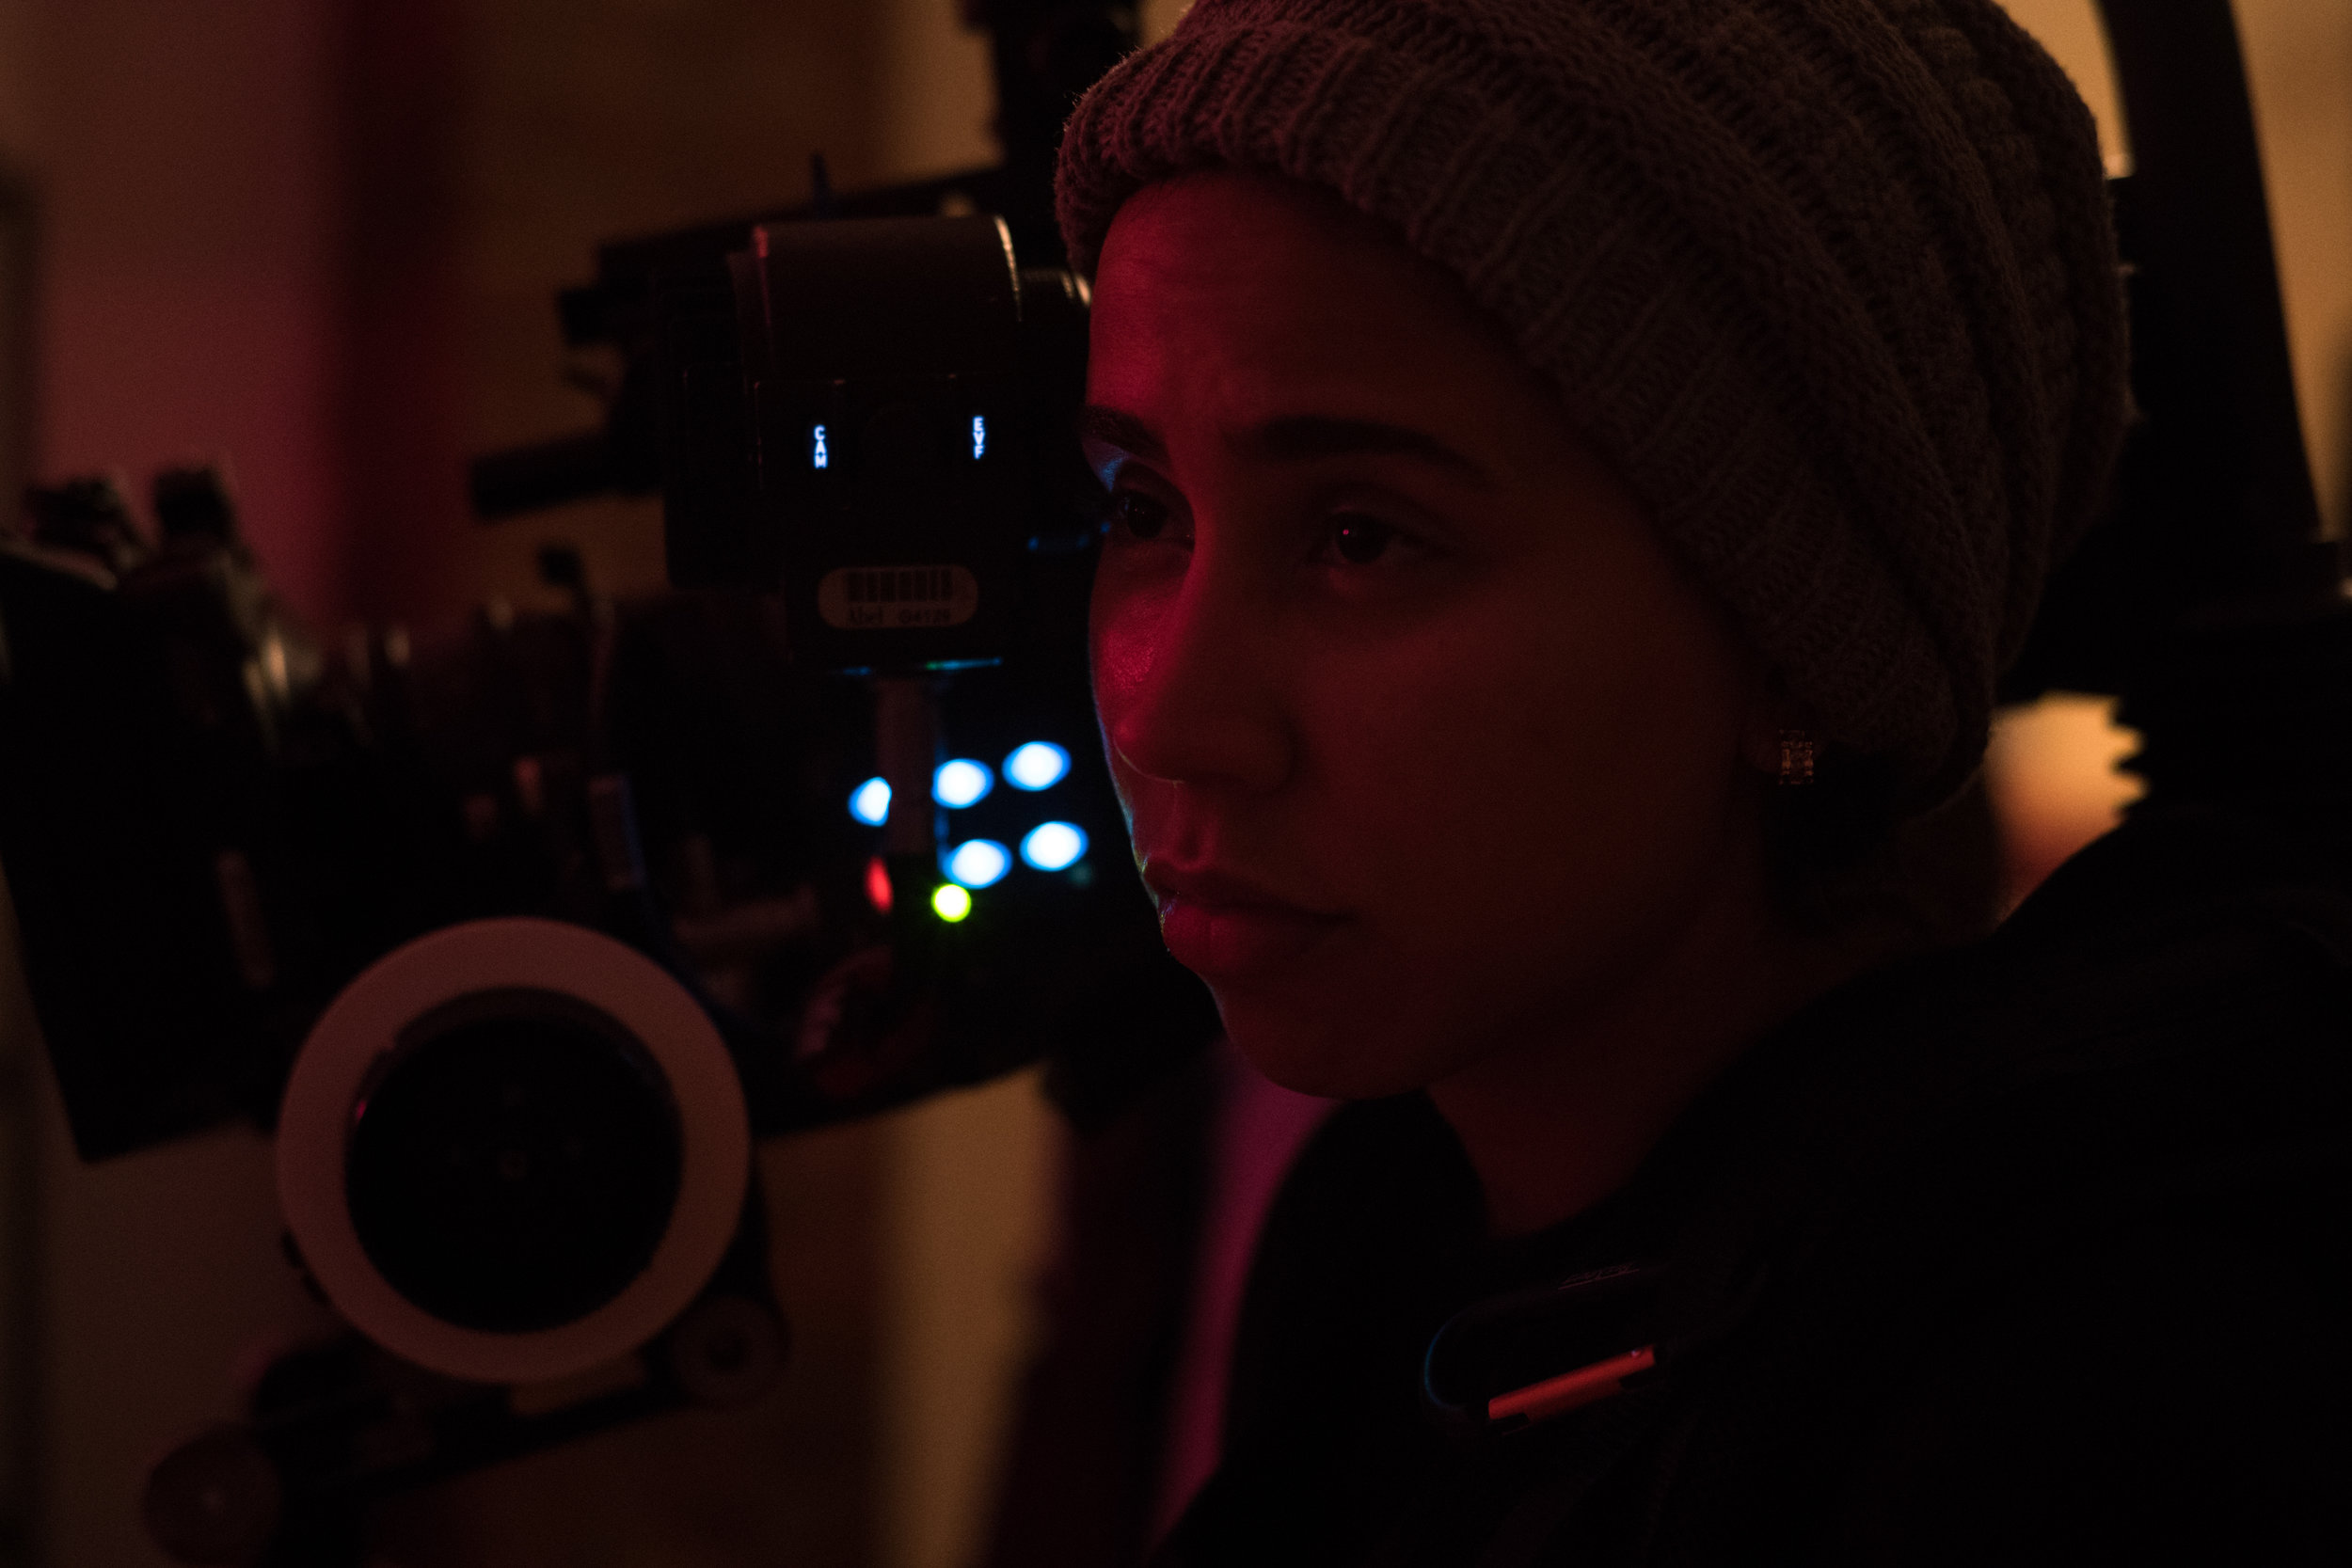 cinematographer Lore Durán